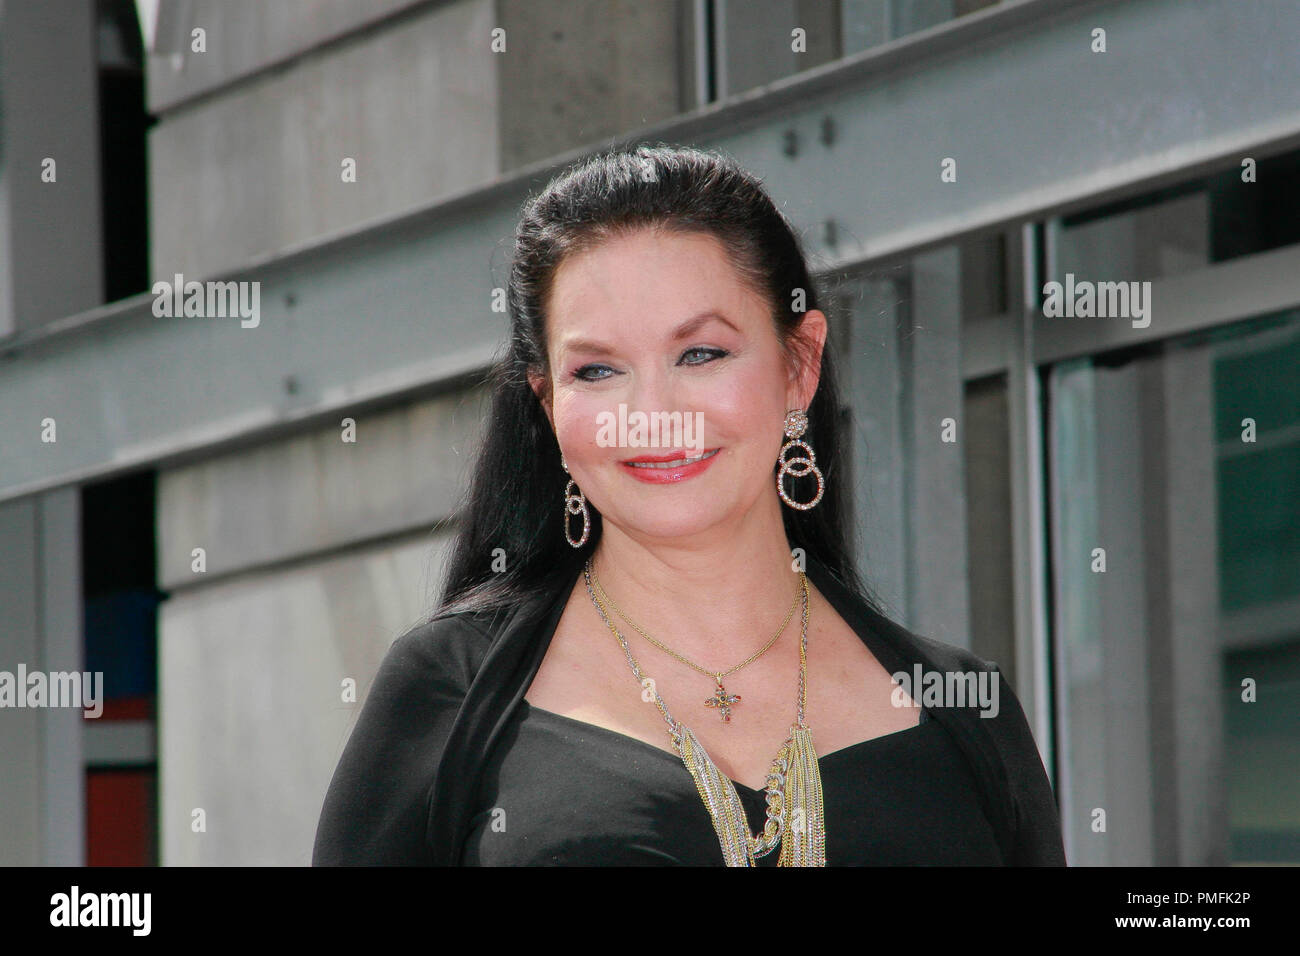 Crystal Gayle at the Hollywood Chamber of Commerce ceremony to honor her with the 2,390th Star on the Hollywood Walk of Fame on Vine Street near Sunset Boulevard in Hollywood, CA, October 2, 2009. Photo by Picturelux File Reference # 30082_12PLX   For Editorial Use Only -  All Rights Reserved - Stock Image